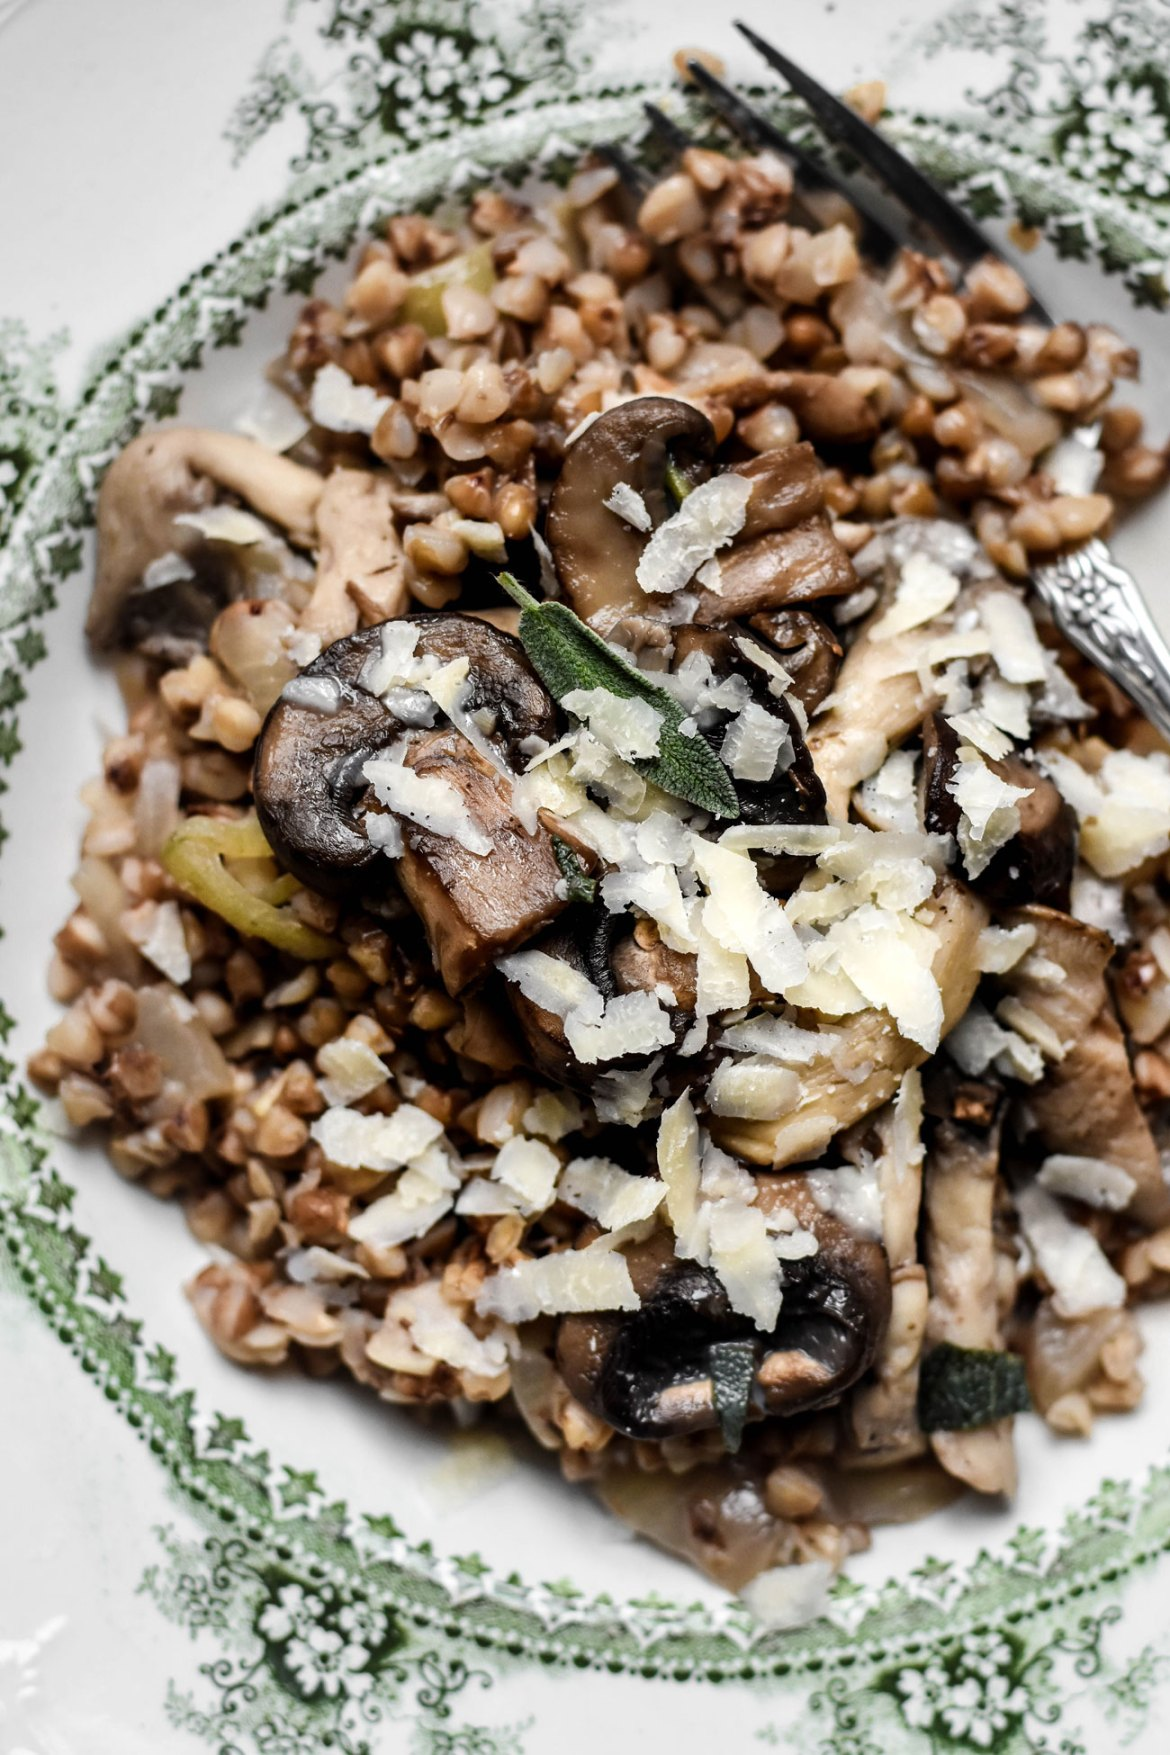 Buckwheat Risotto with Mushroom Forestière Sauce